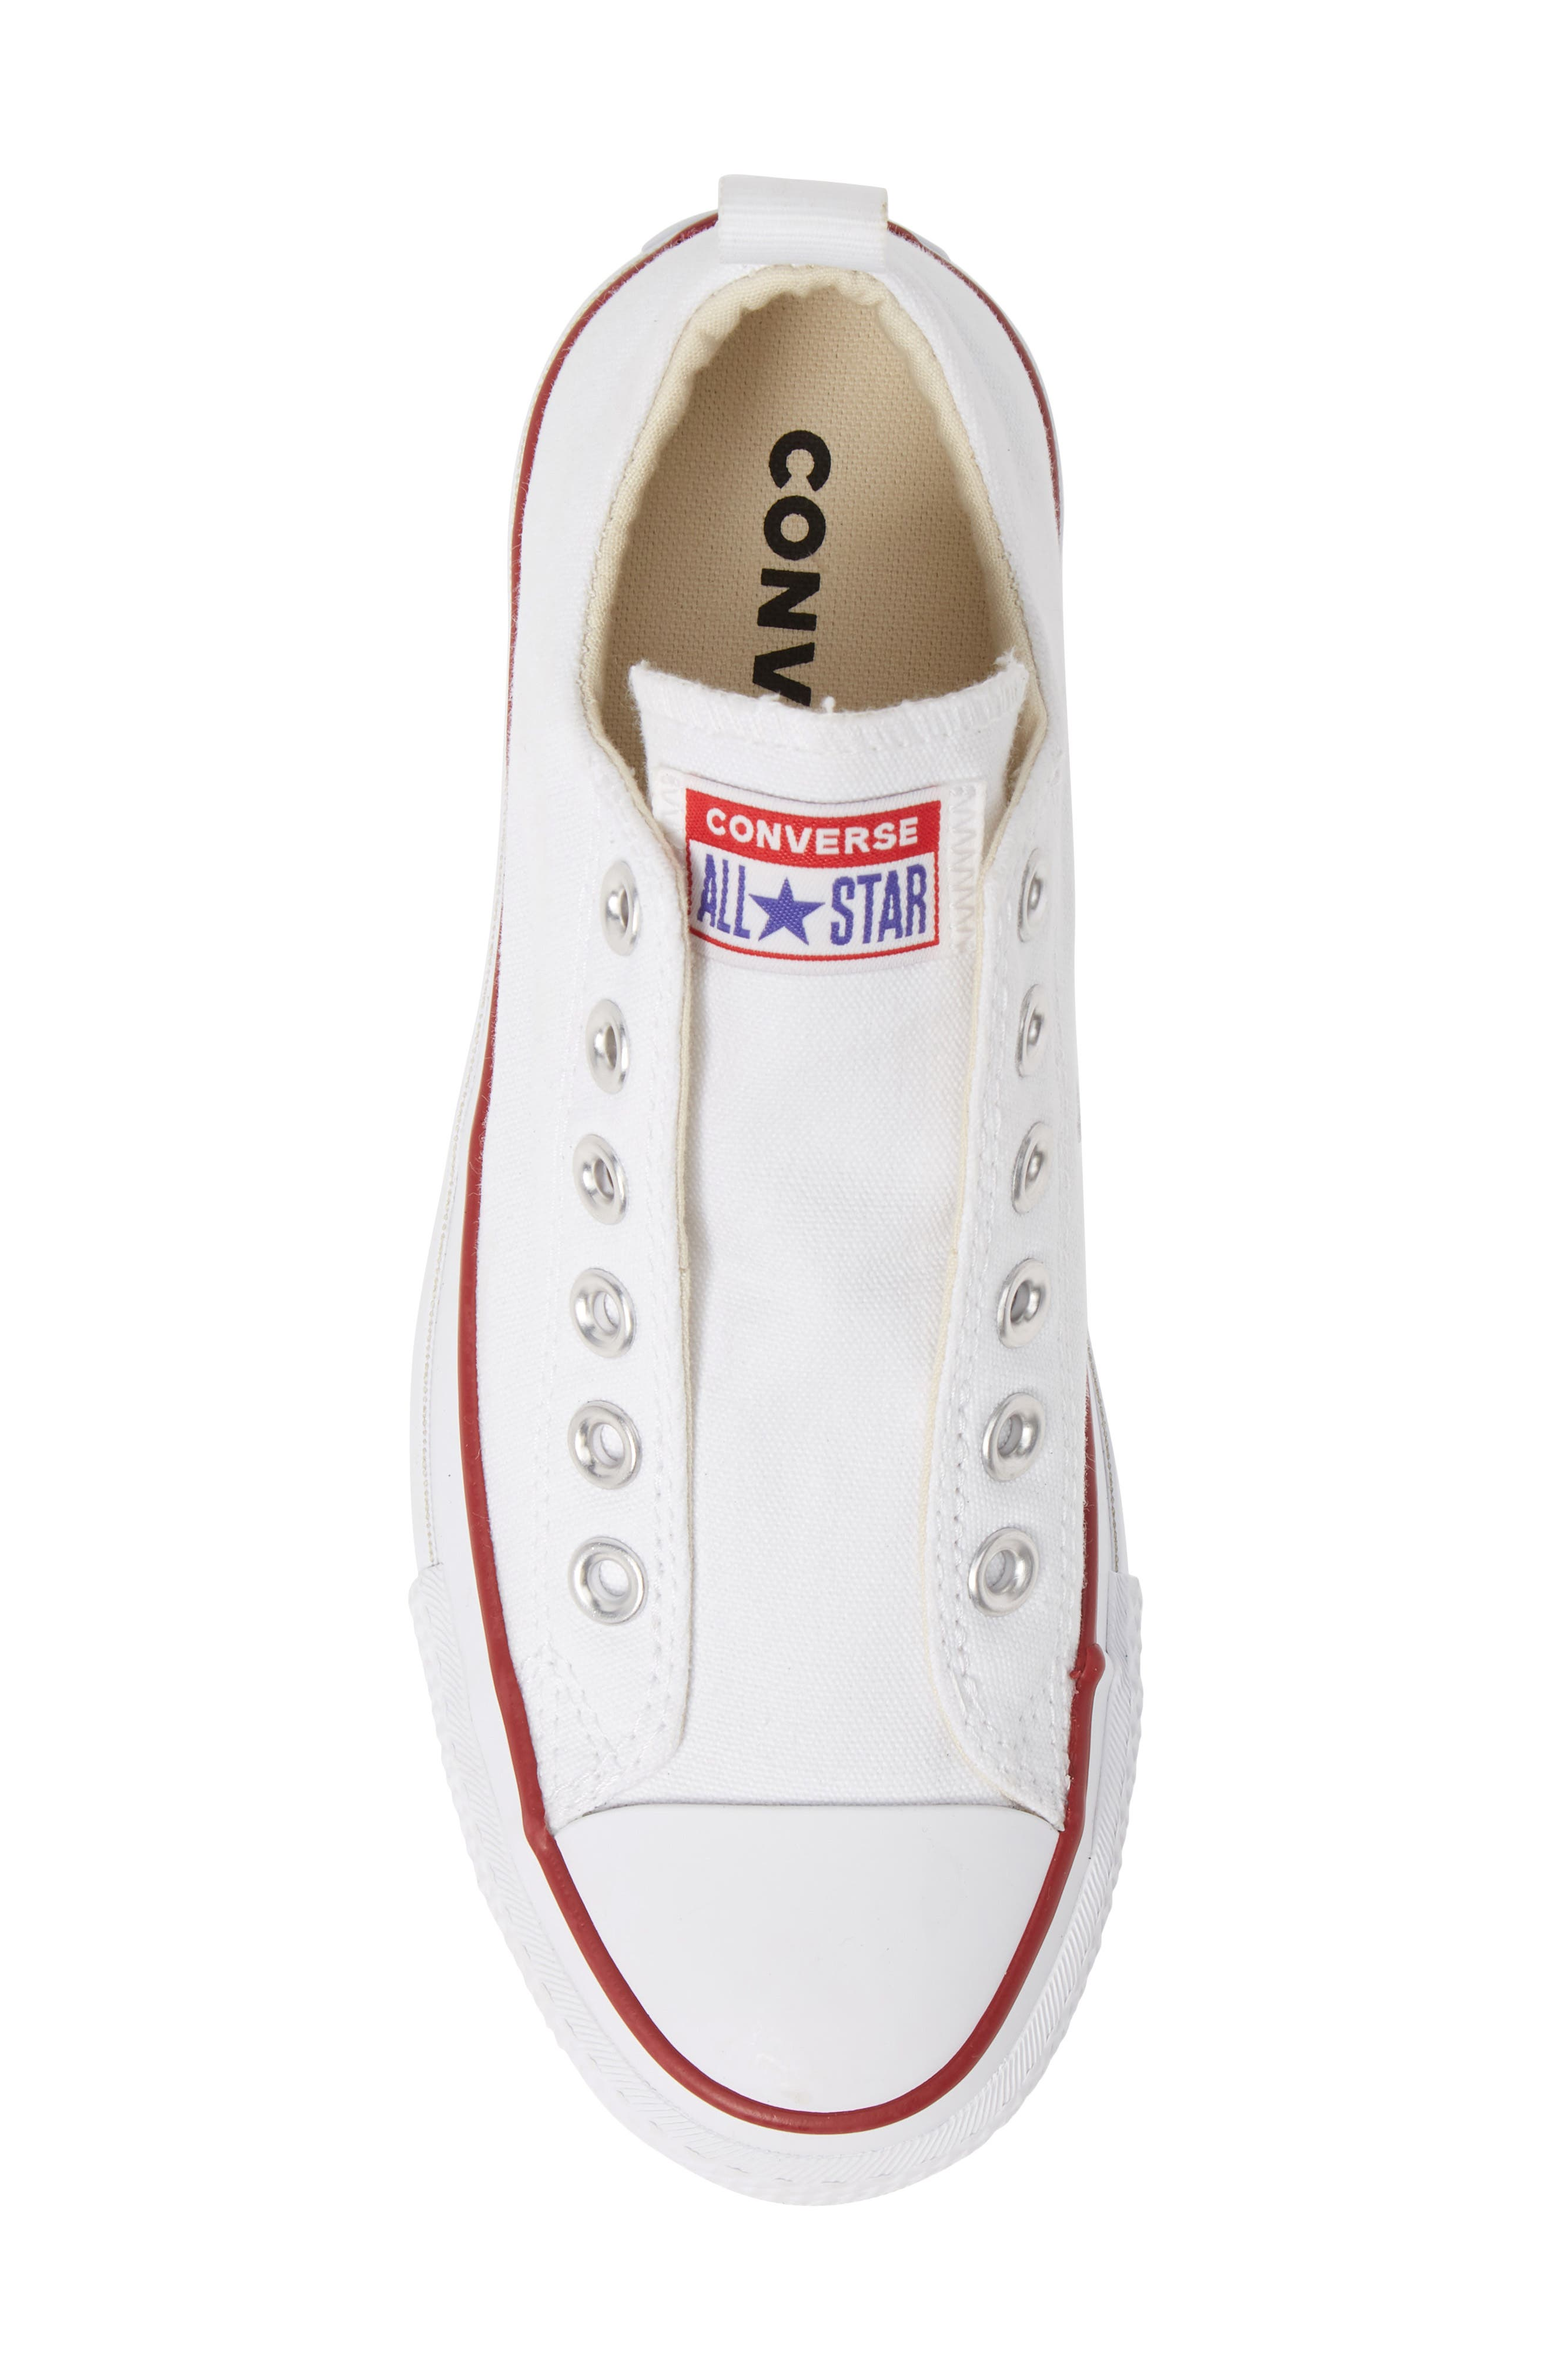 CONVERSE, Chuck Taylor<sup>®</sup> All Star<sup>®</sup> Low Top Sneaker, Alternate thumbnail 5, color, WHITE/ RED/ BLUE